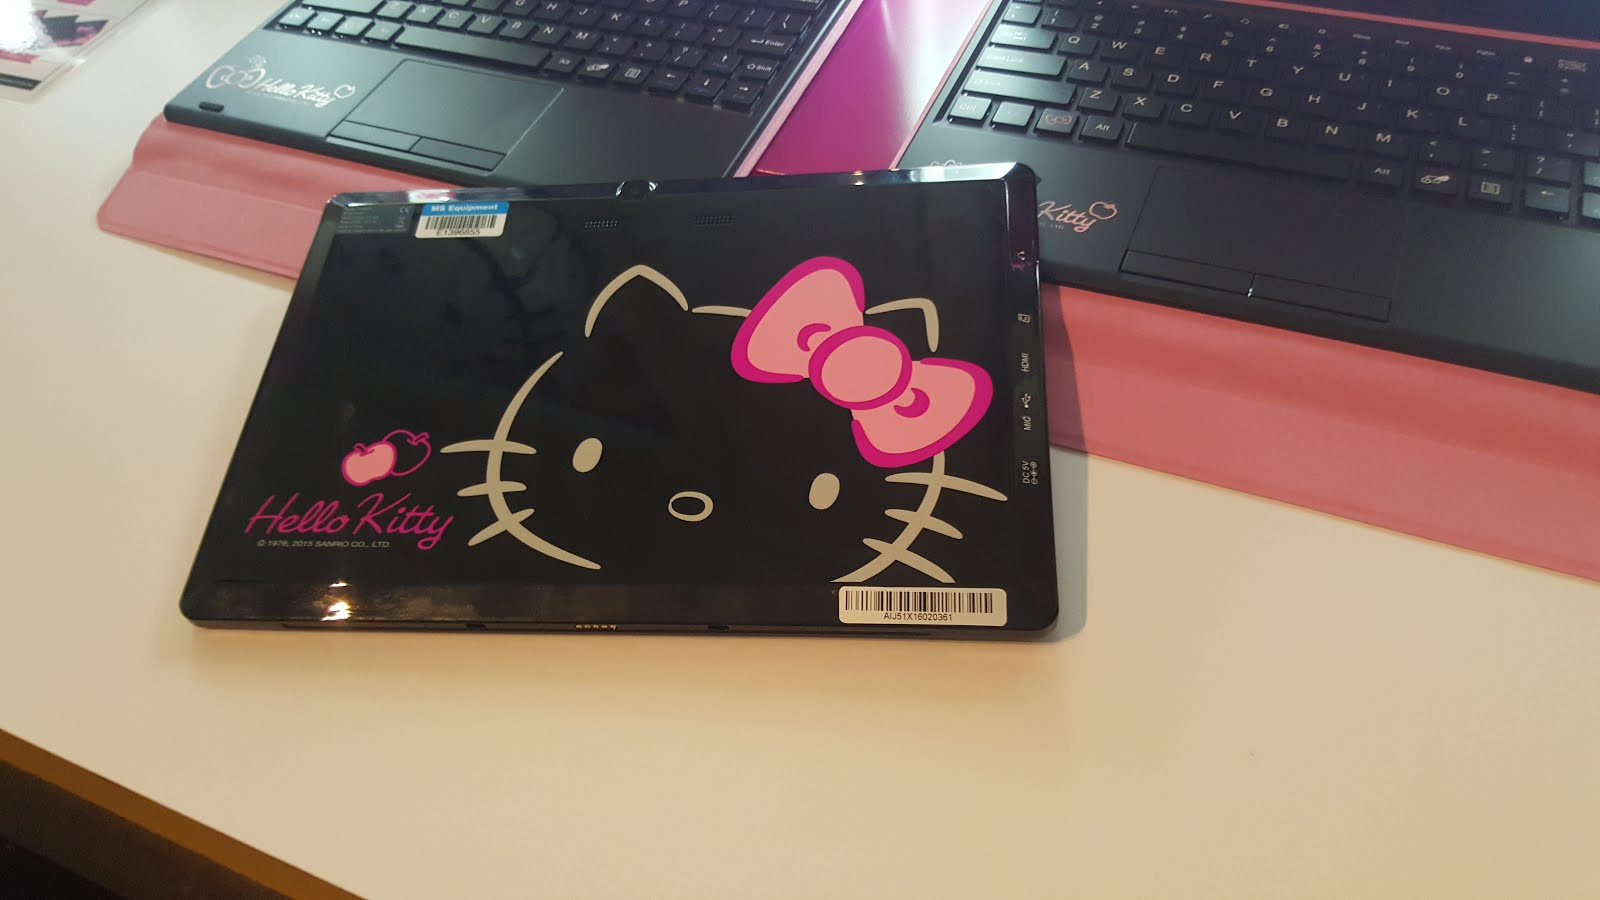 90d2440a6 The Grace 10 Light tablet also sports a series of limited edition Hello  Kitty wallpapers specially crafted for this product, as well as unique Hello  Kitty ...